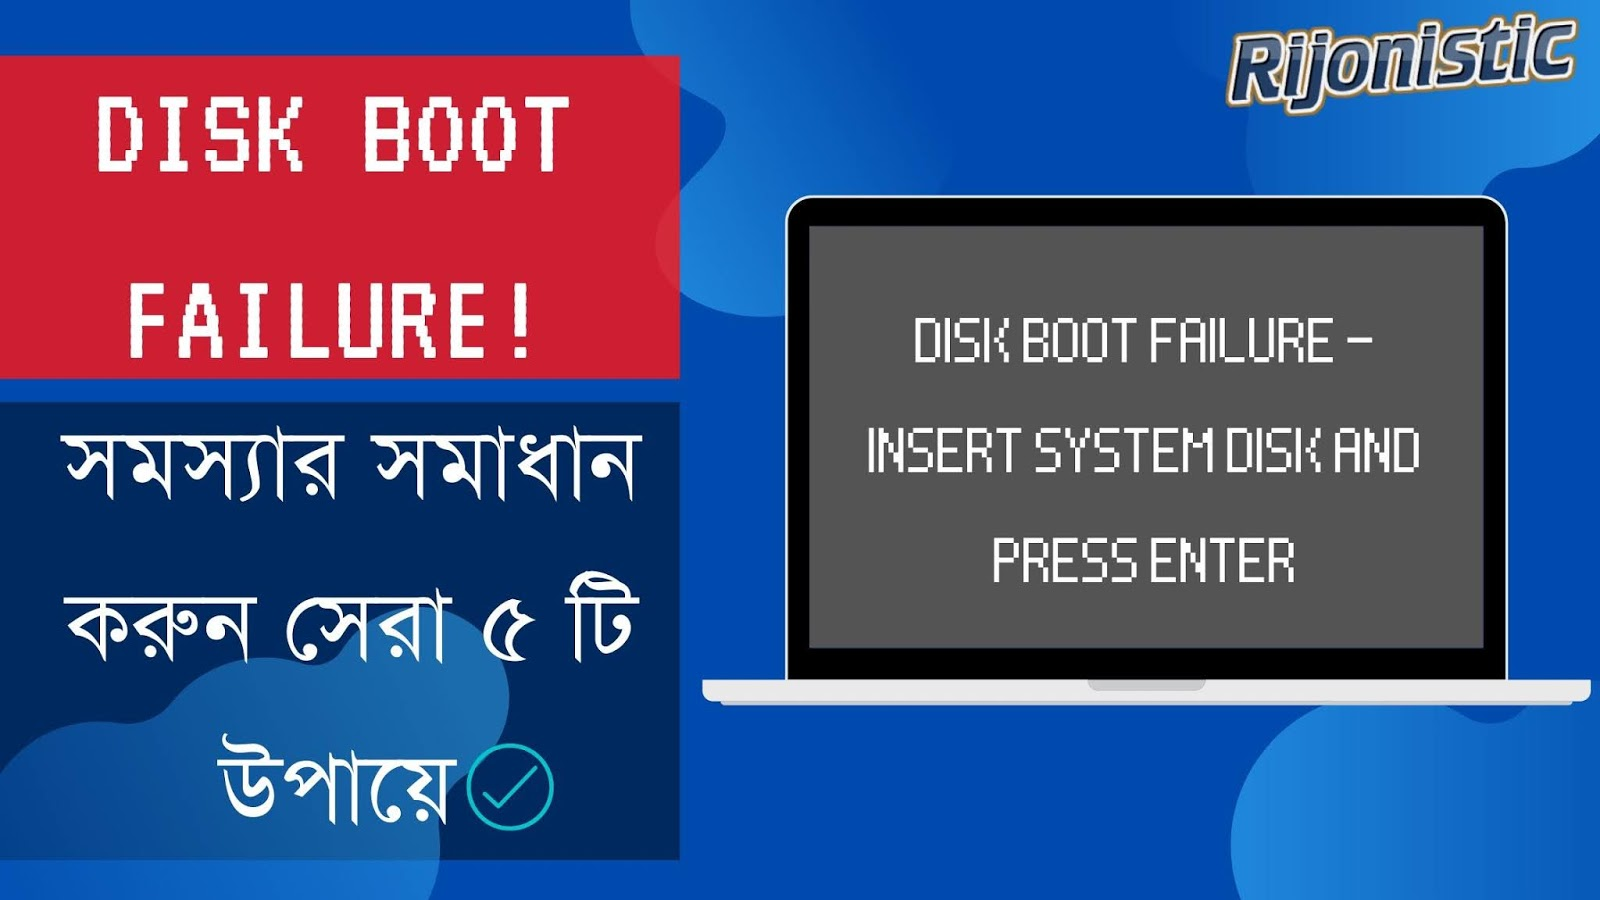 How to fix disk boot failure in computer, Top 5 Ways to fix disk boot failure, My Computer shows disk boot failure,